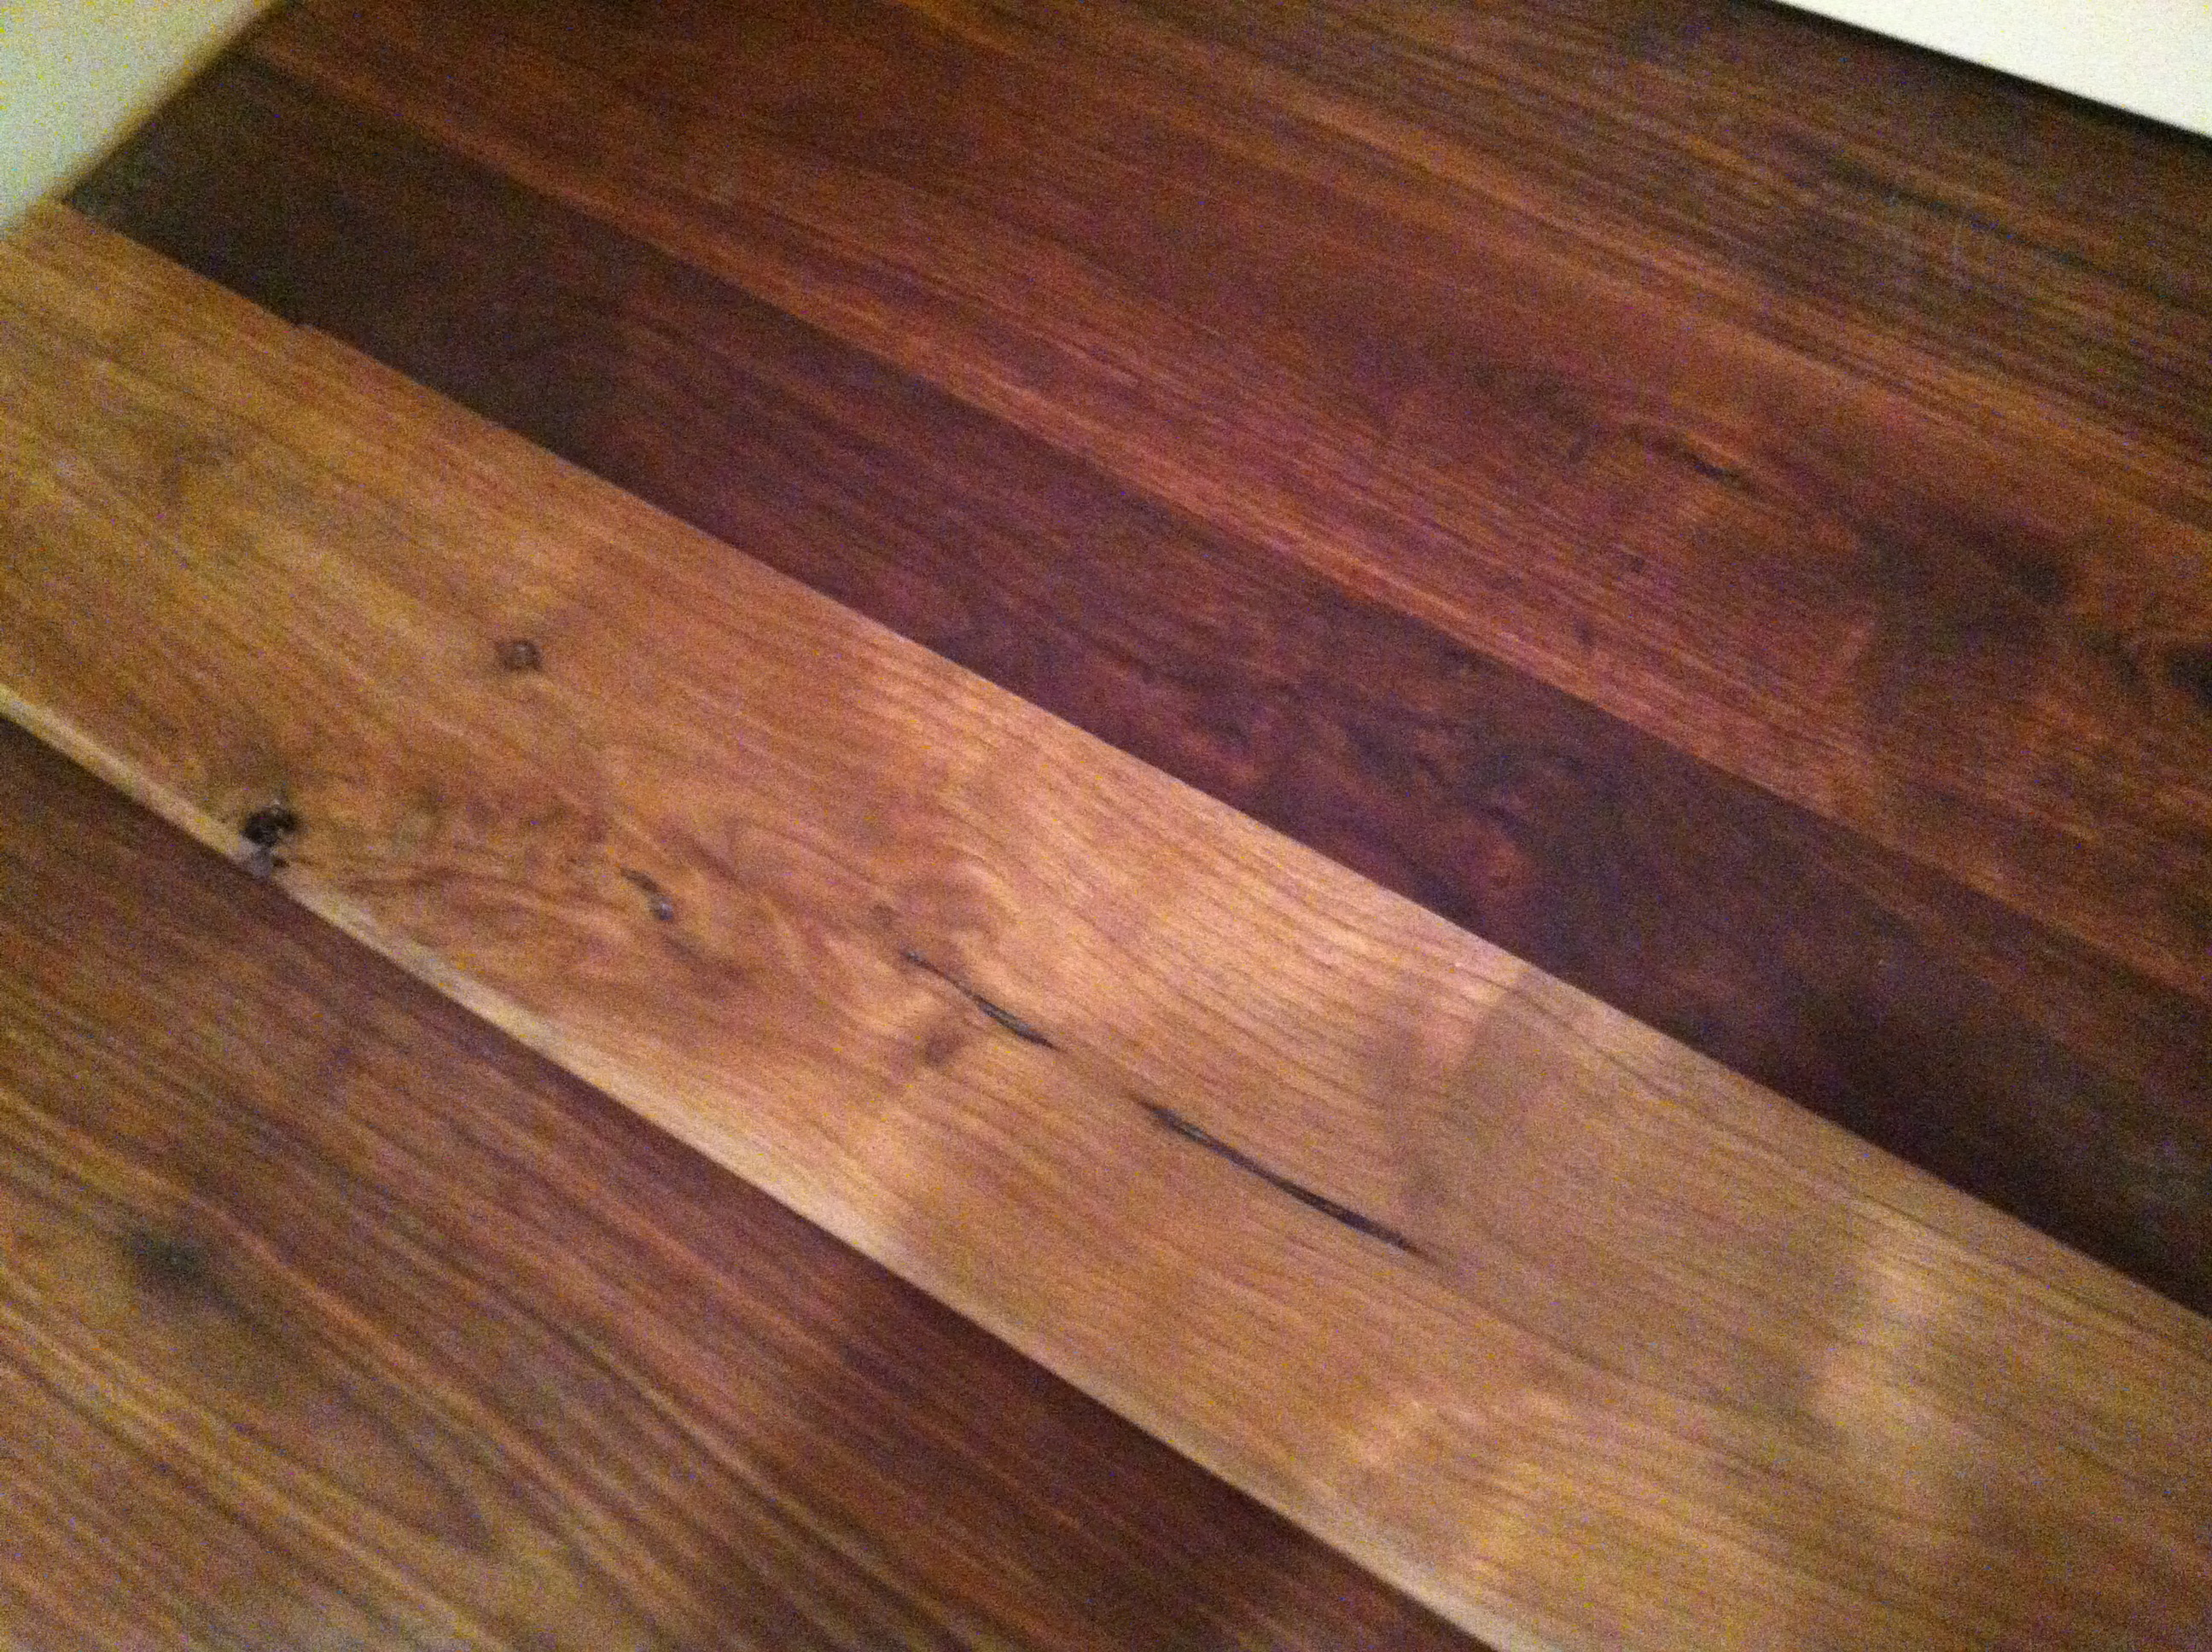 Is water based polyurethane vs oil based - Water Based Piece In The Middle Of A Piece Of Restored Flooring